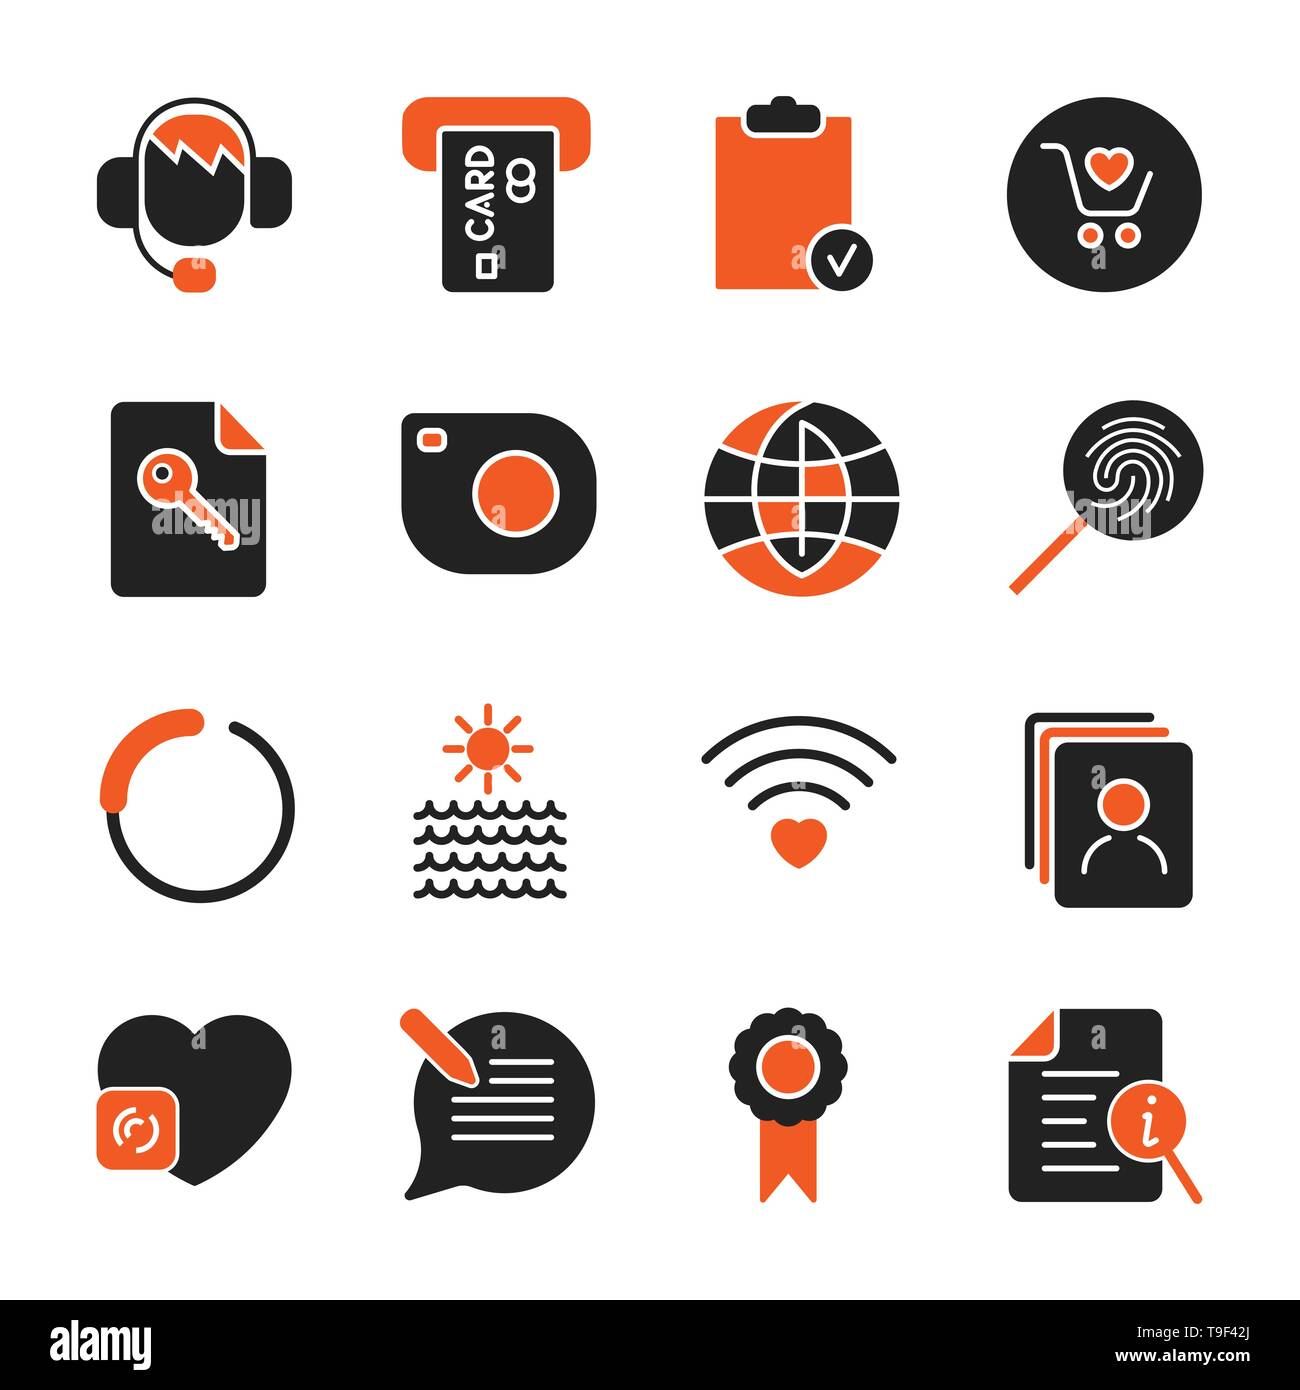 Set with different icons for apps, programs, sites and other. Office and business icons set - Stock Image